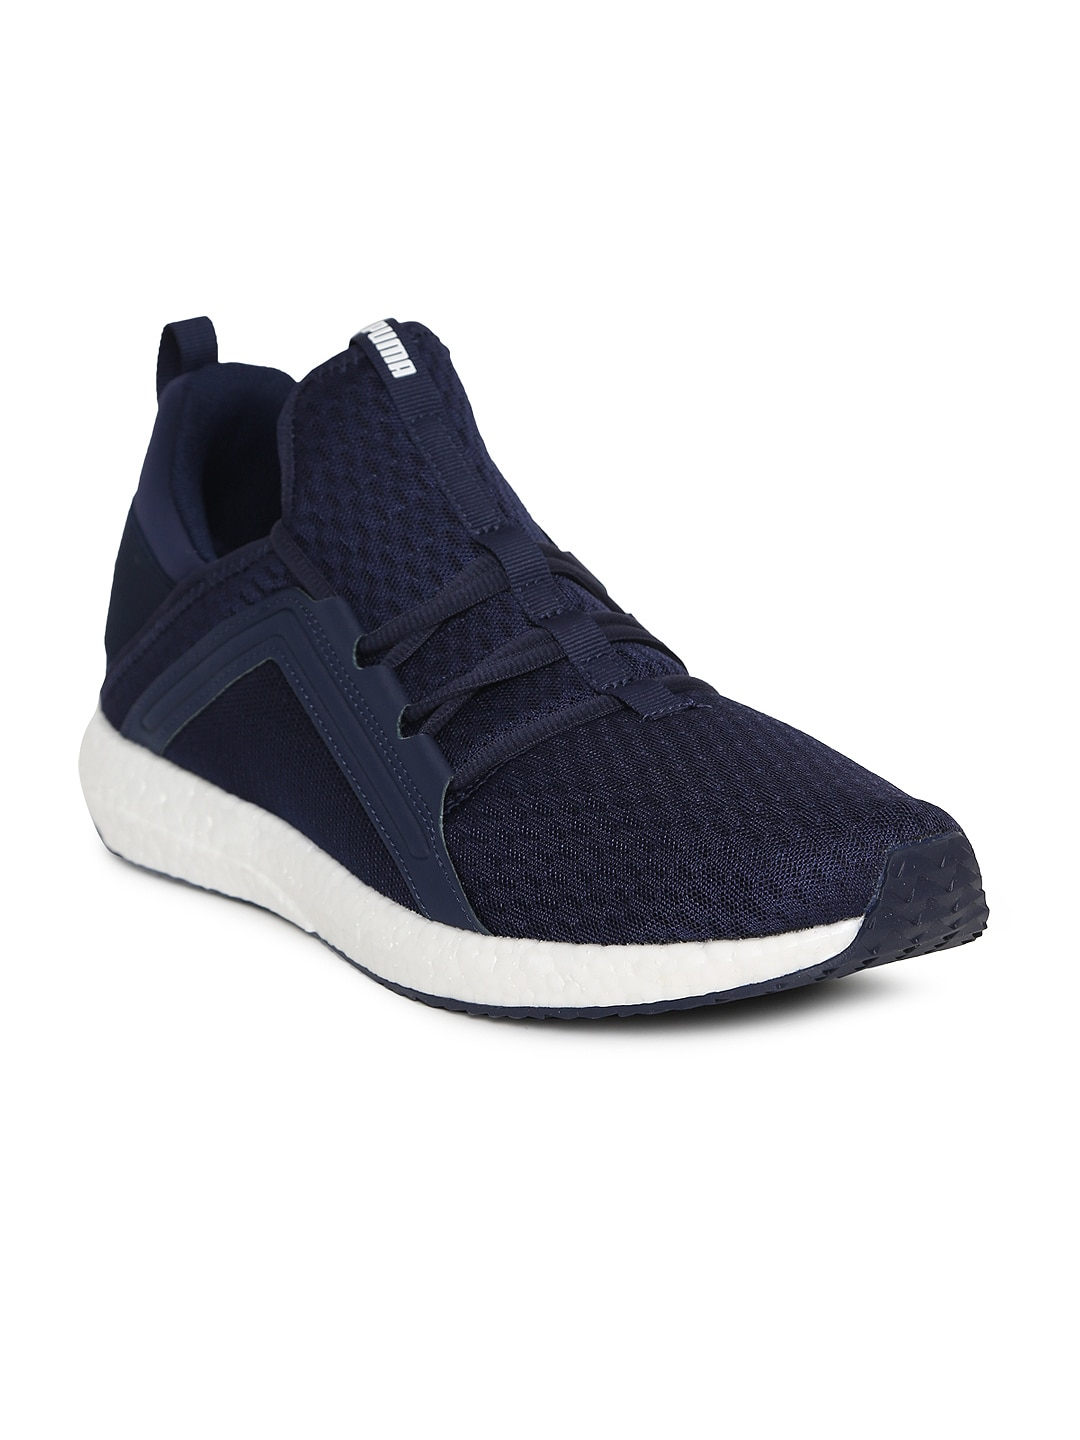 Puma Shoes - Buy Puma Shoes for Men   Women Online in India 6f1acf45d0b